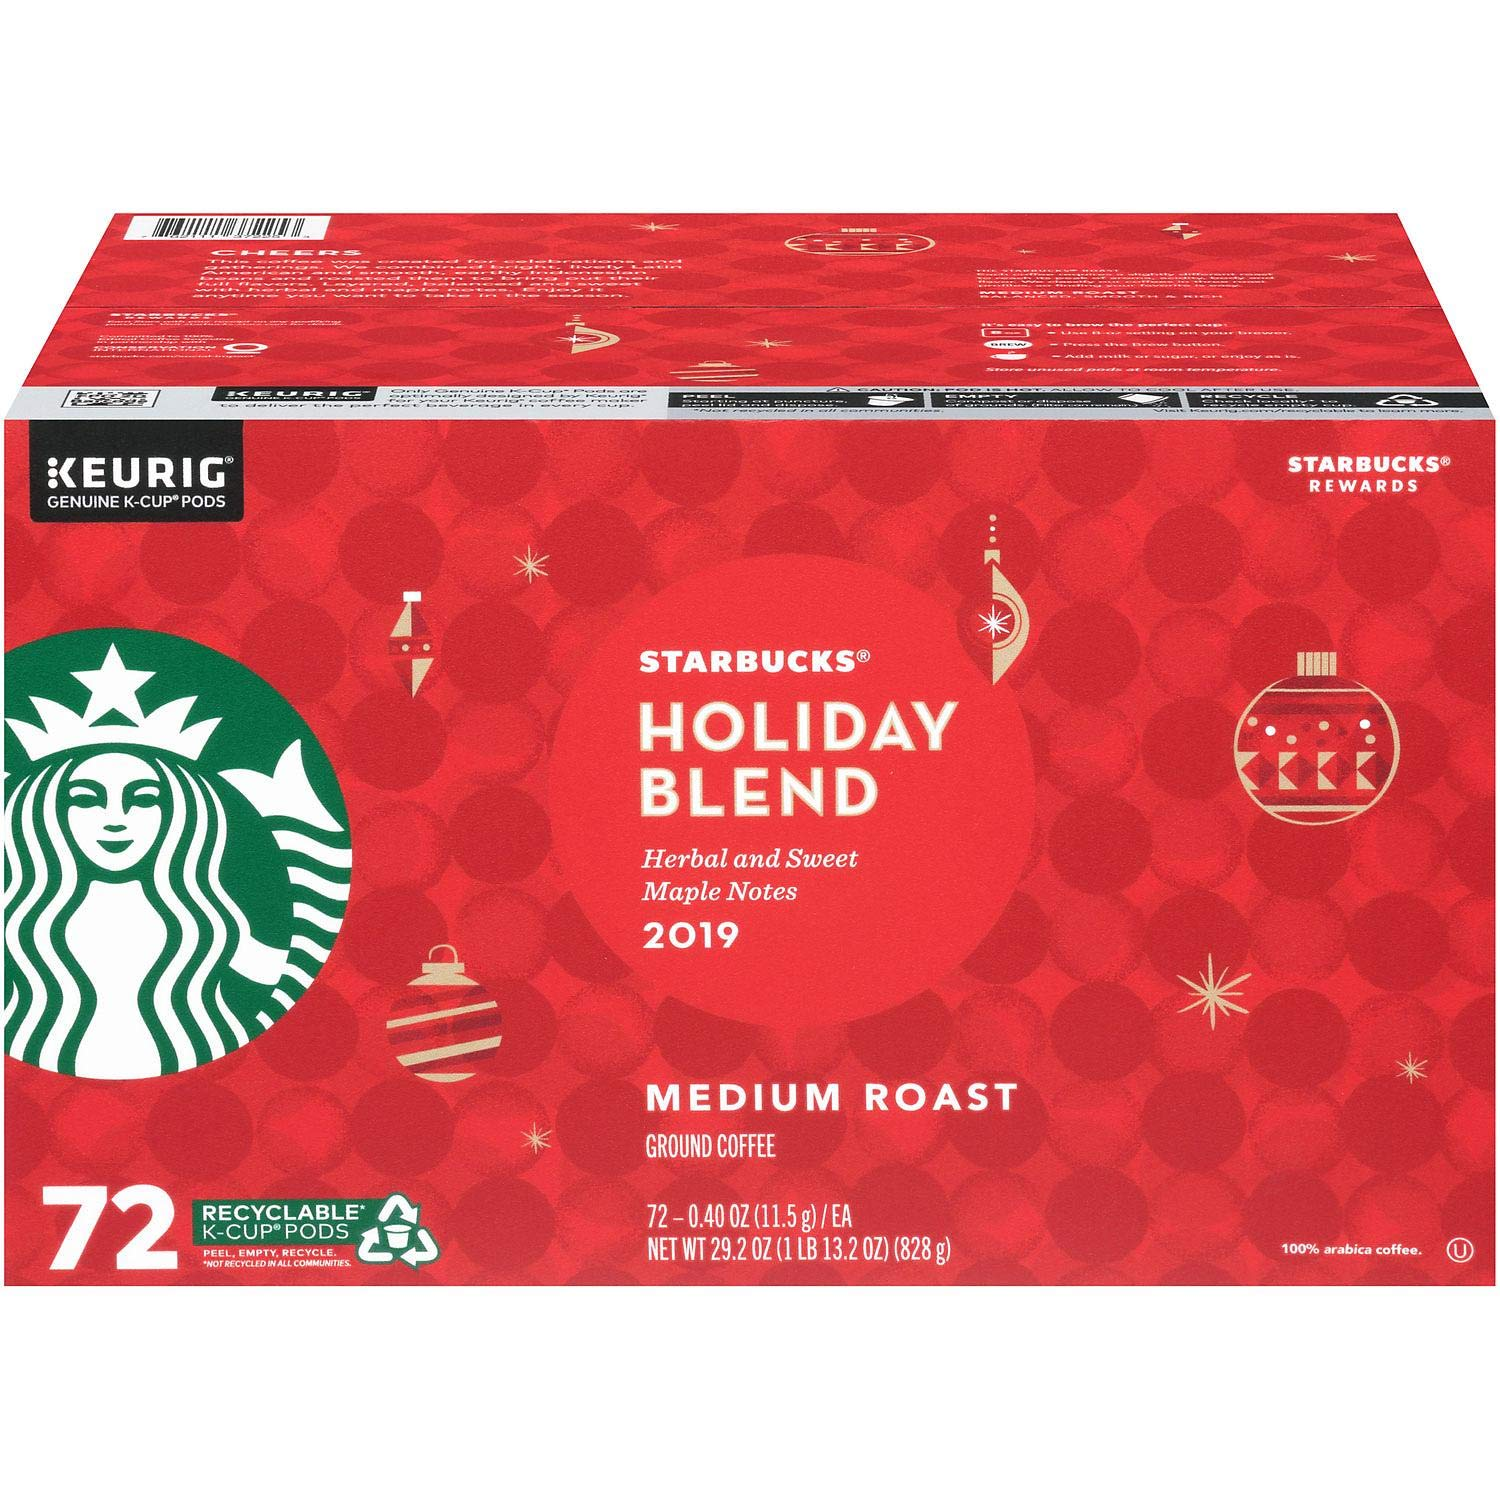 Starbucks Christmas Blend 2020 K Cups Amazon.: Starbucks Holiday Blend Medium Roast Coffee 72/ 0.40